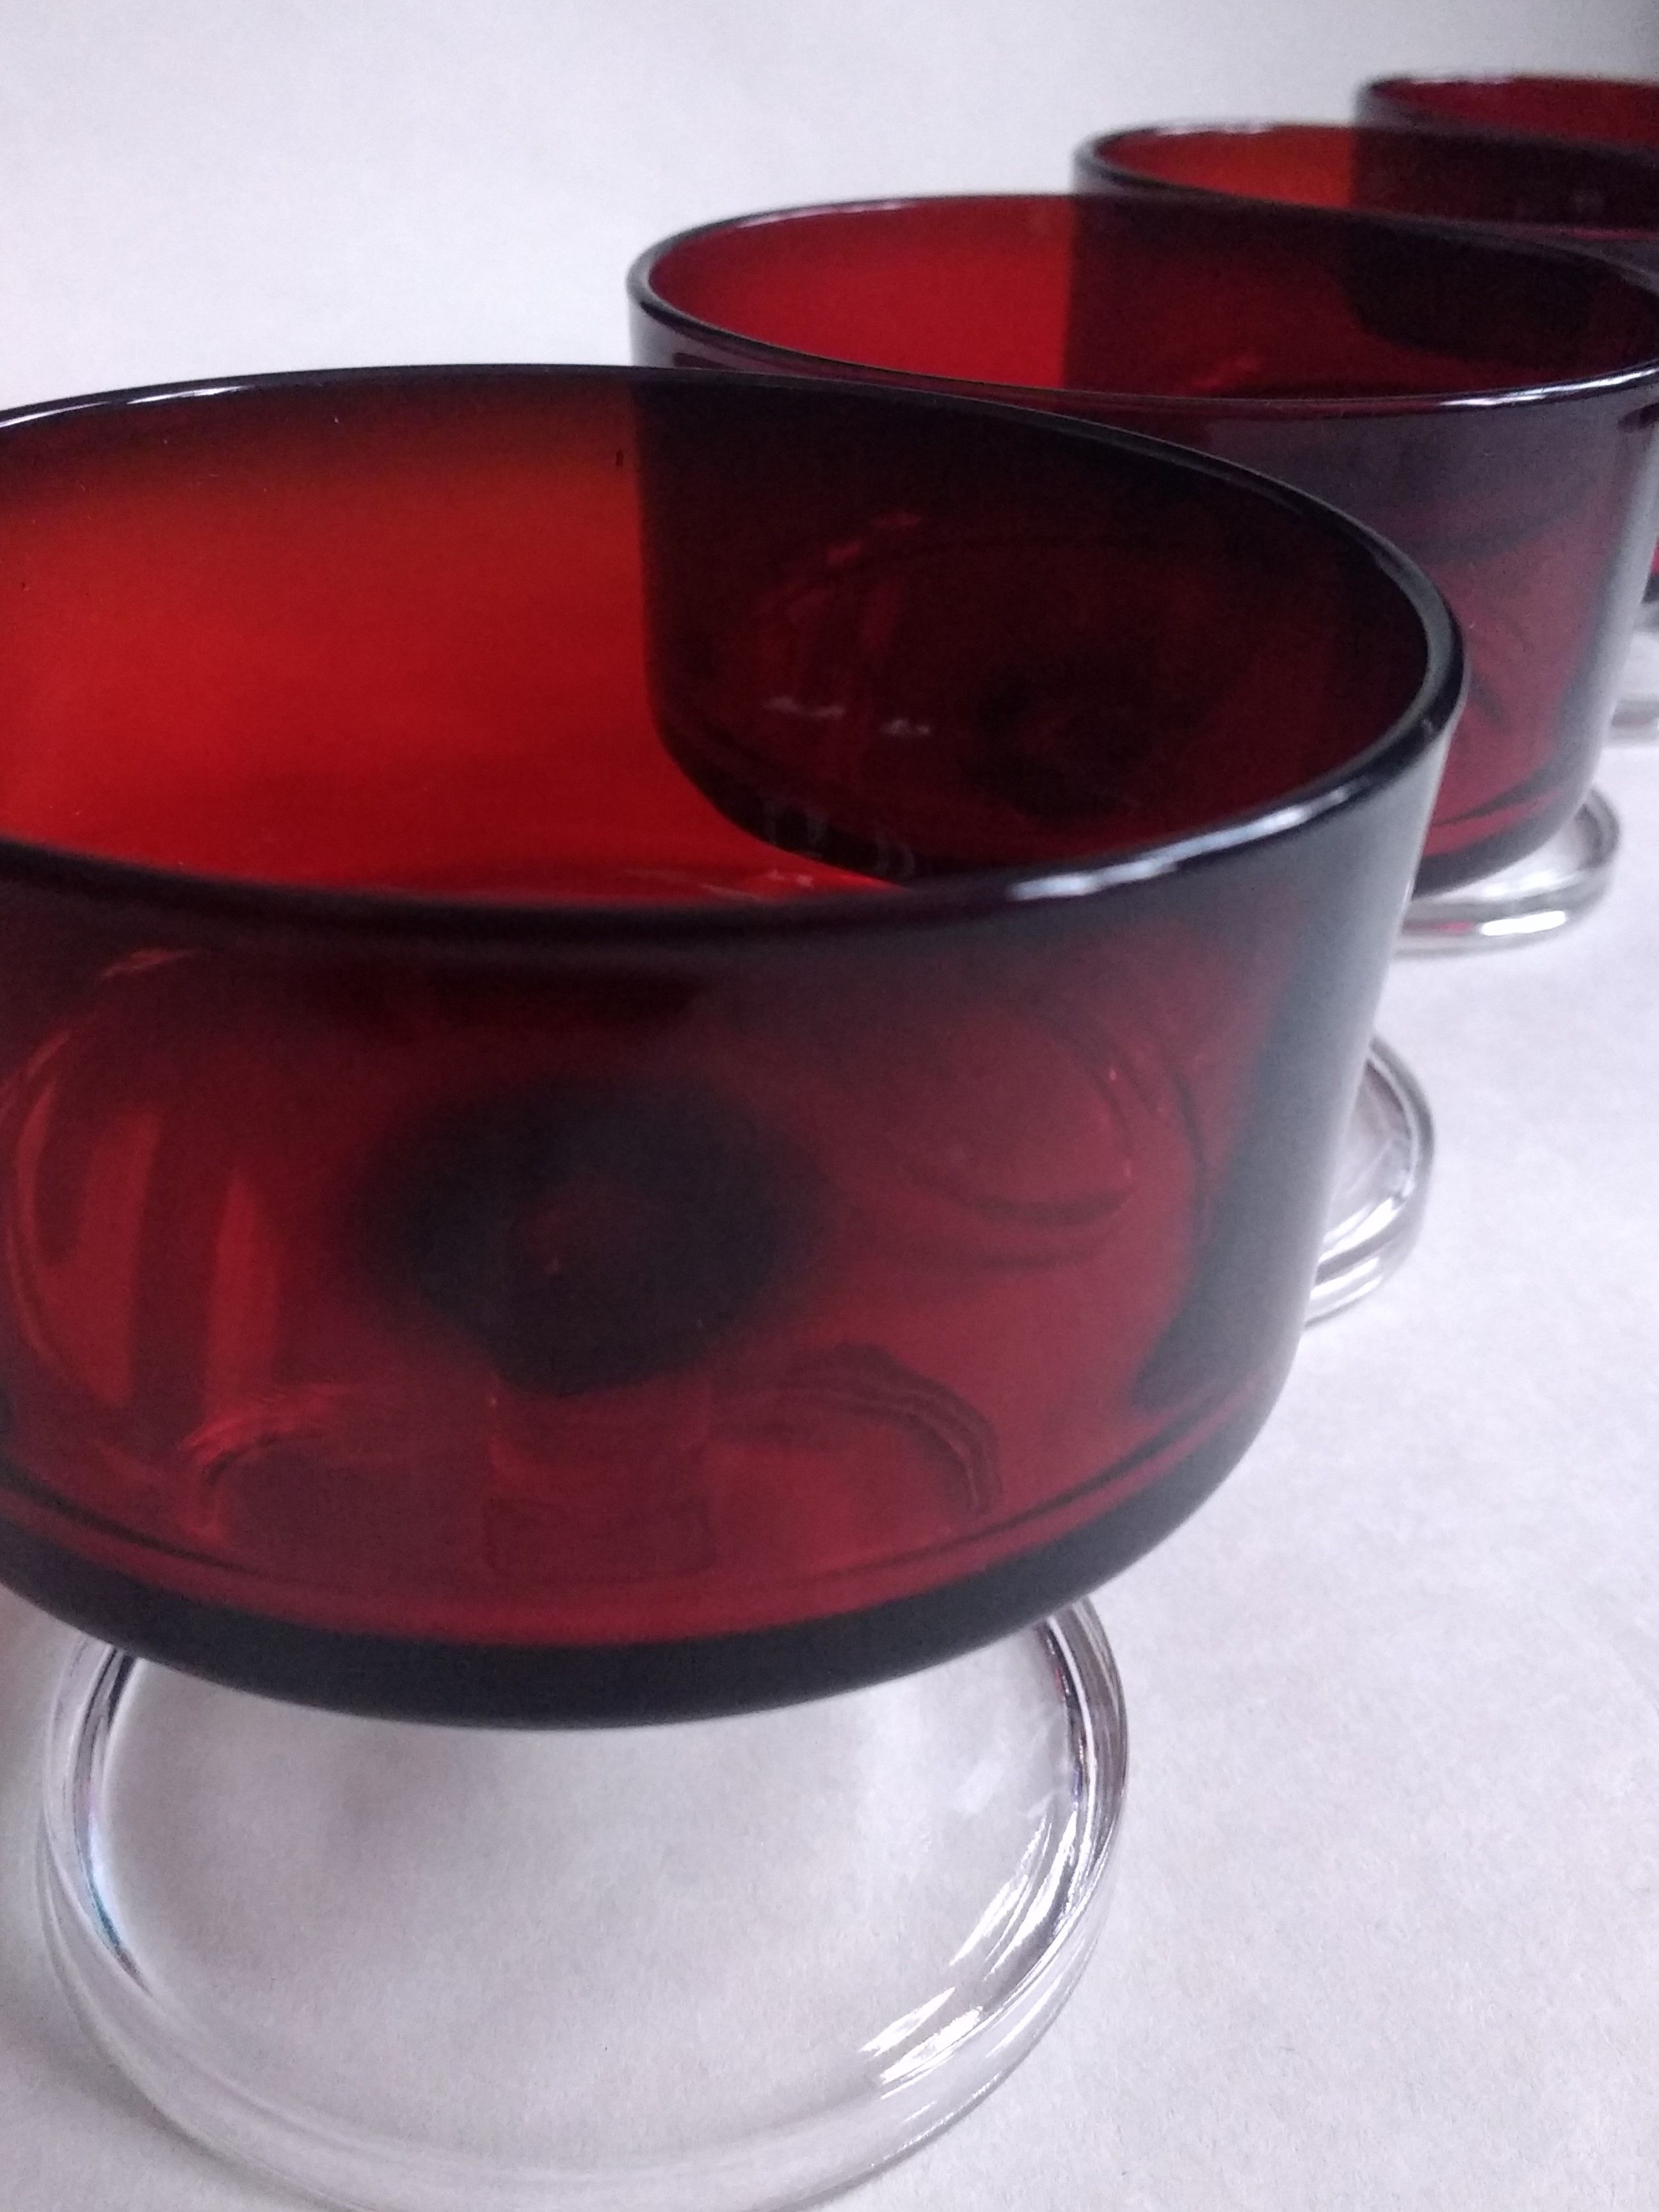 Stunning Arocroc Cranberry Desert Dishes Shot Glasses Cherry Glasses And Fruit Trifle Bowl Fruit Trifle Fruit Trifle Bowl Trifle Bowl